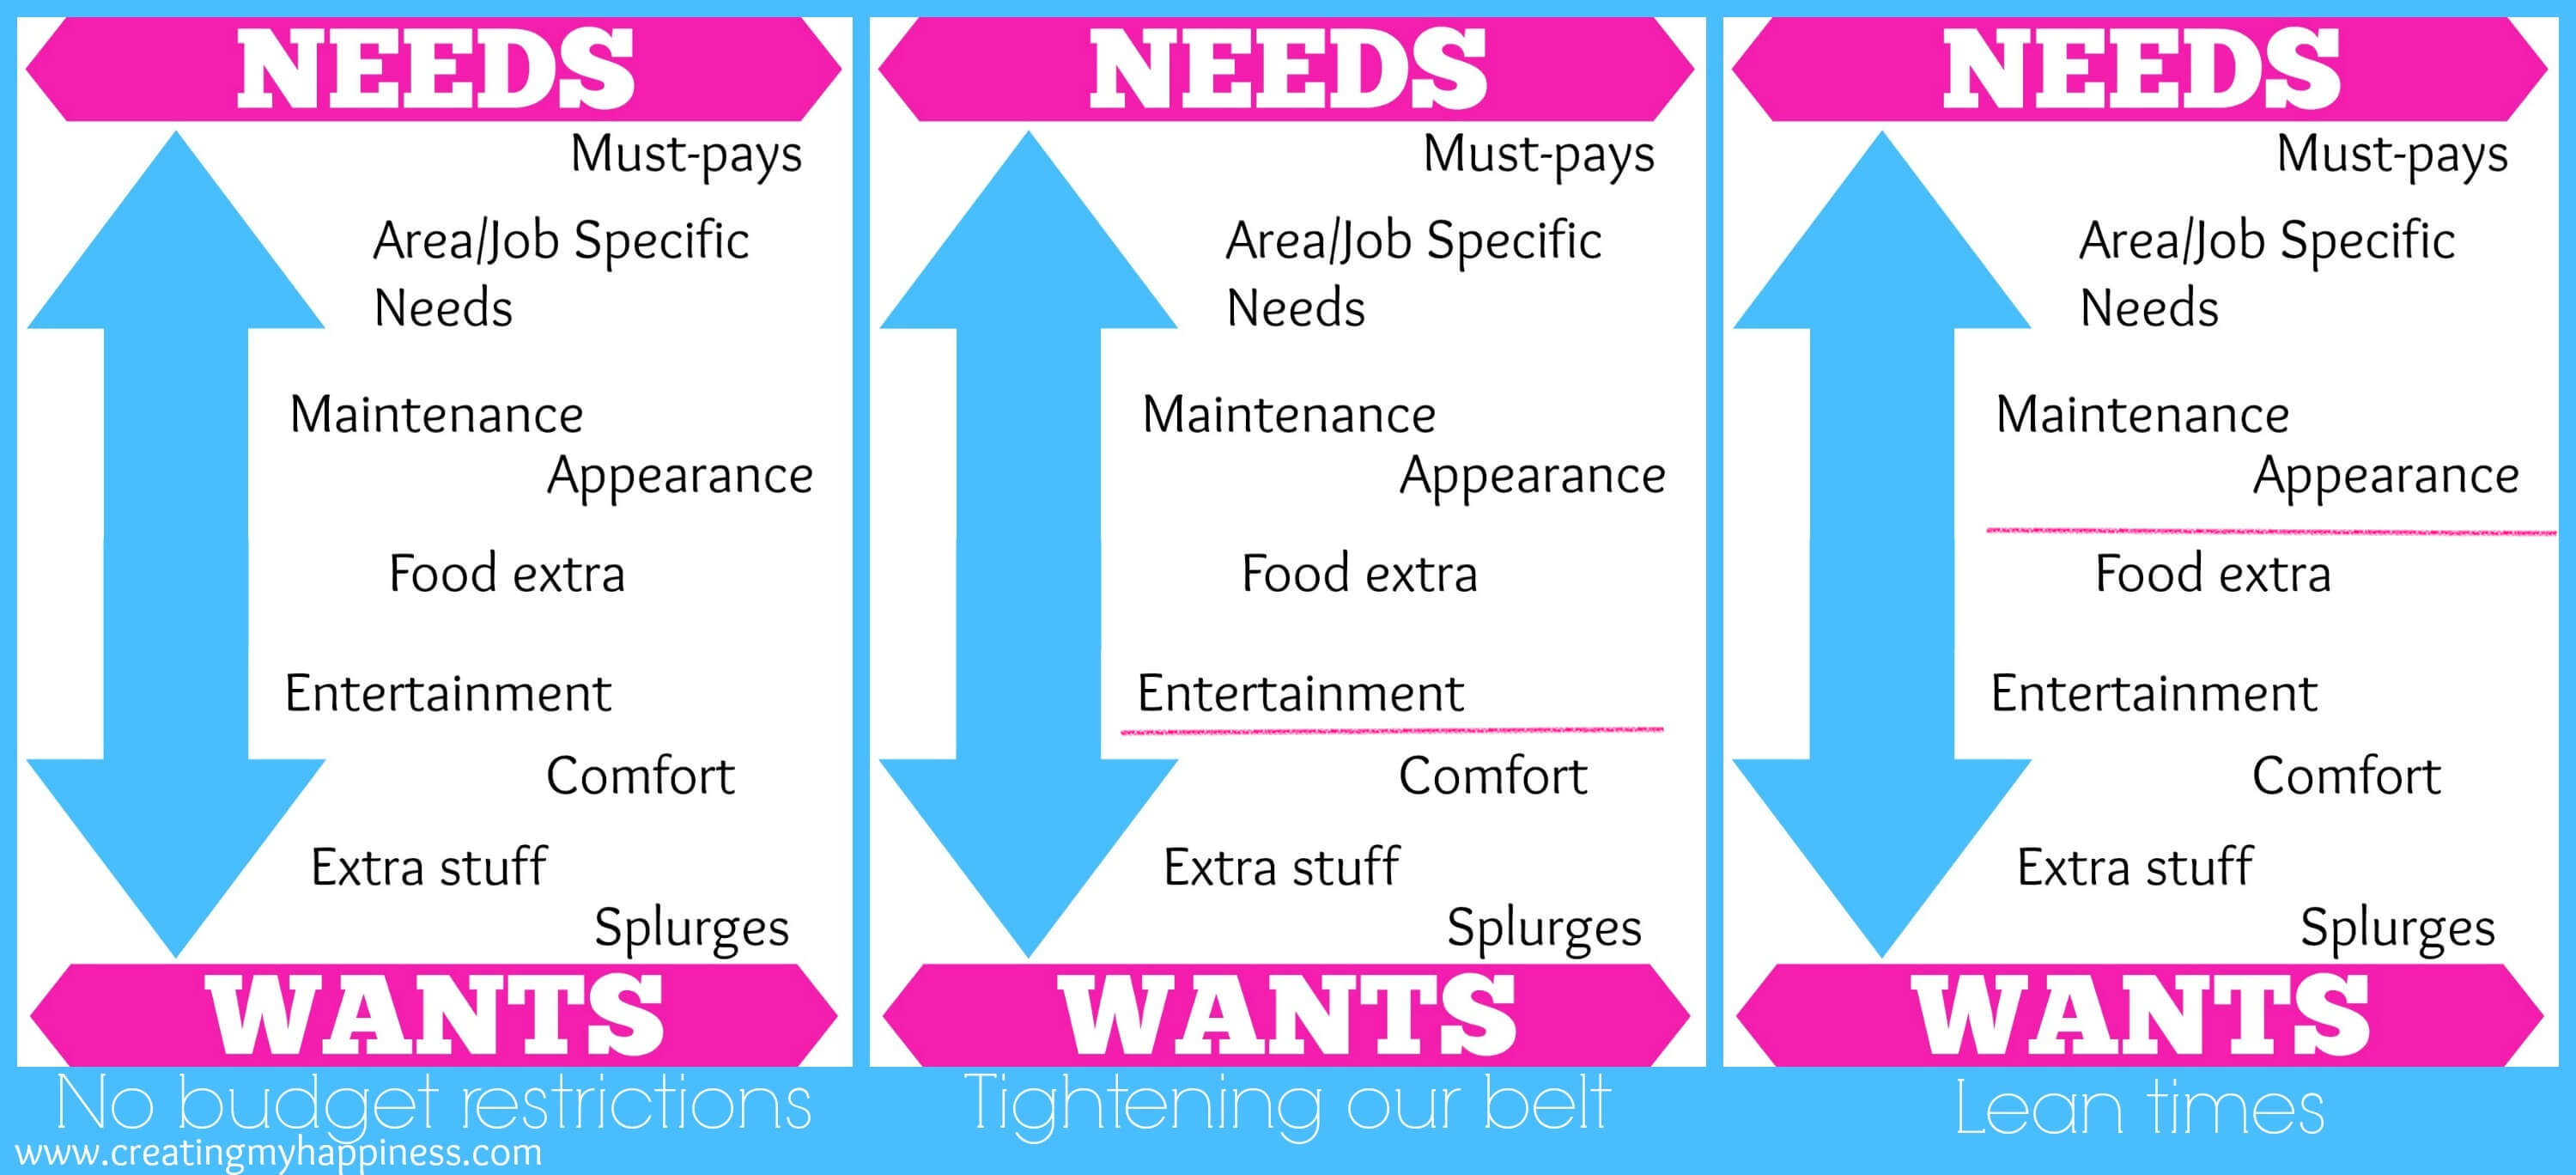 Budgeting In Between Wants And Needs